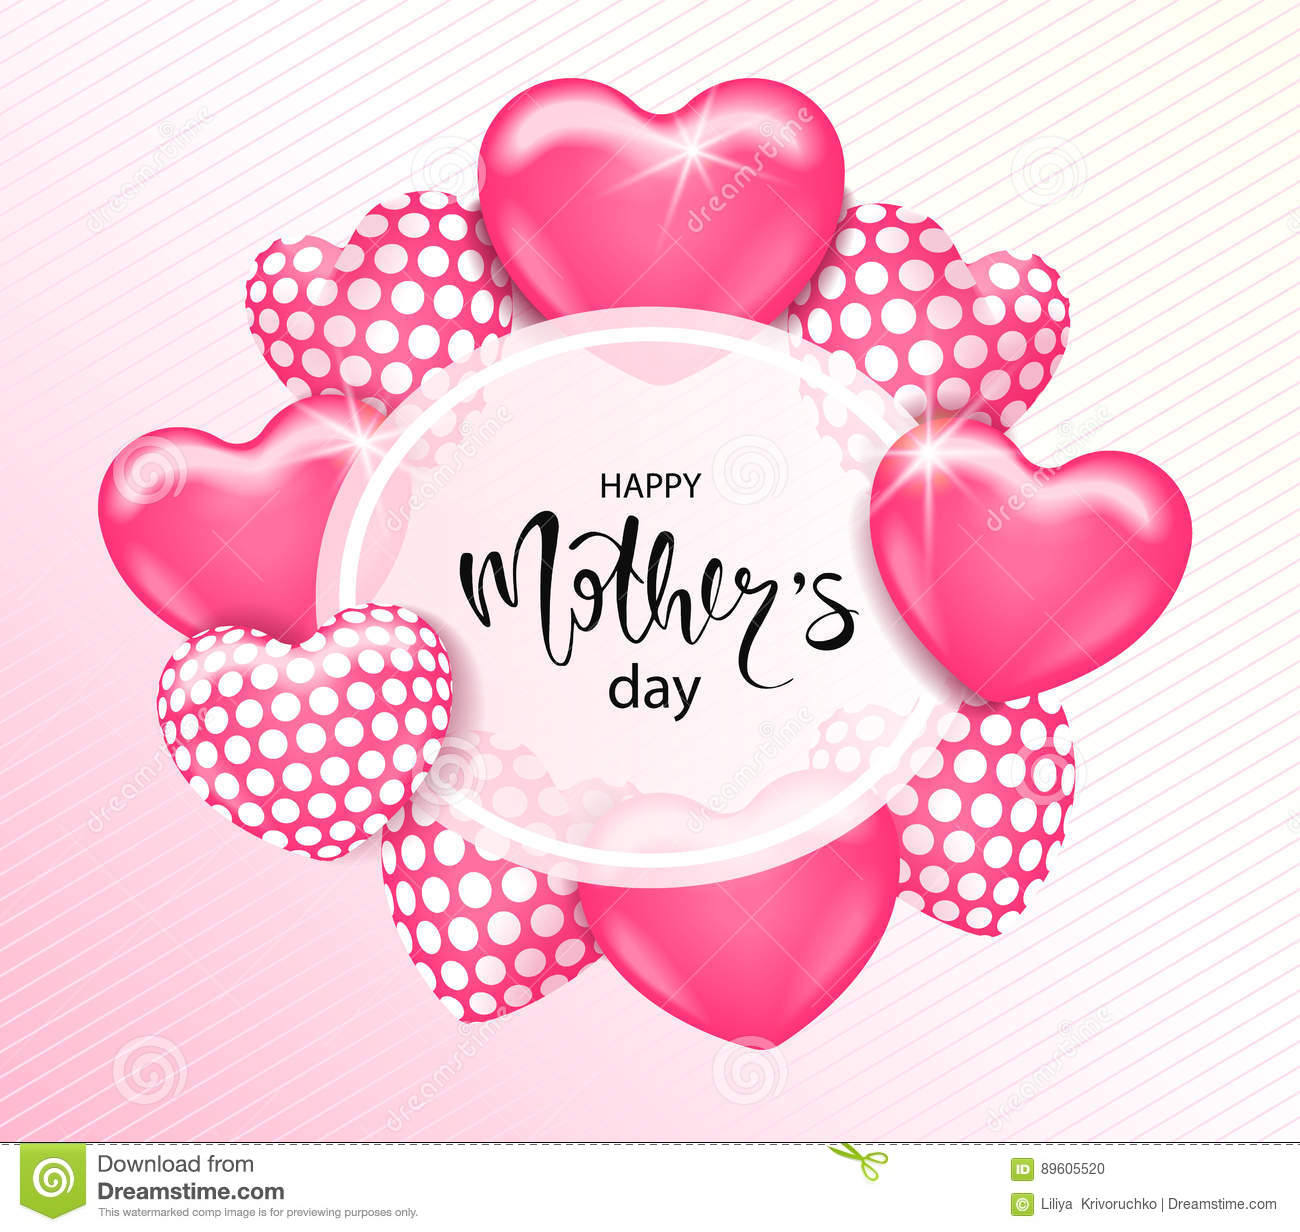 Mothers Day Storewide Sale Template: Happy Mothers Day Card Template With Cute Pink Heart